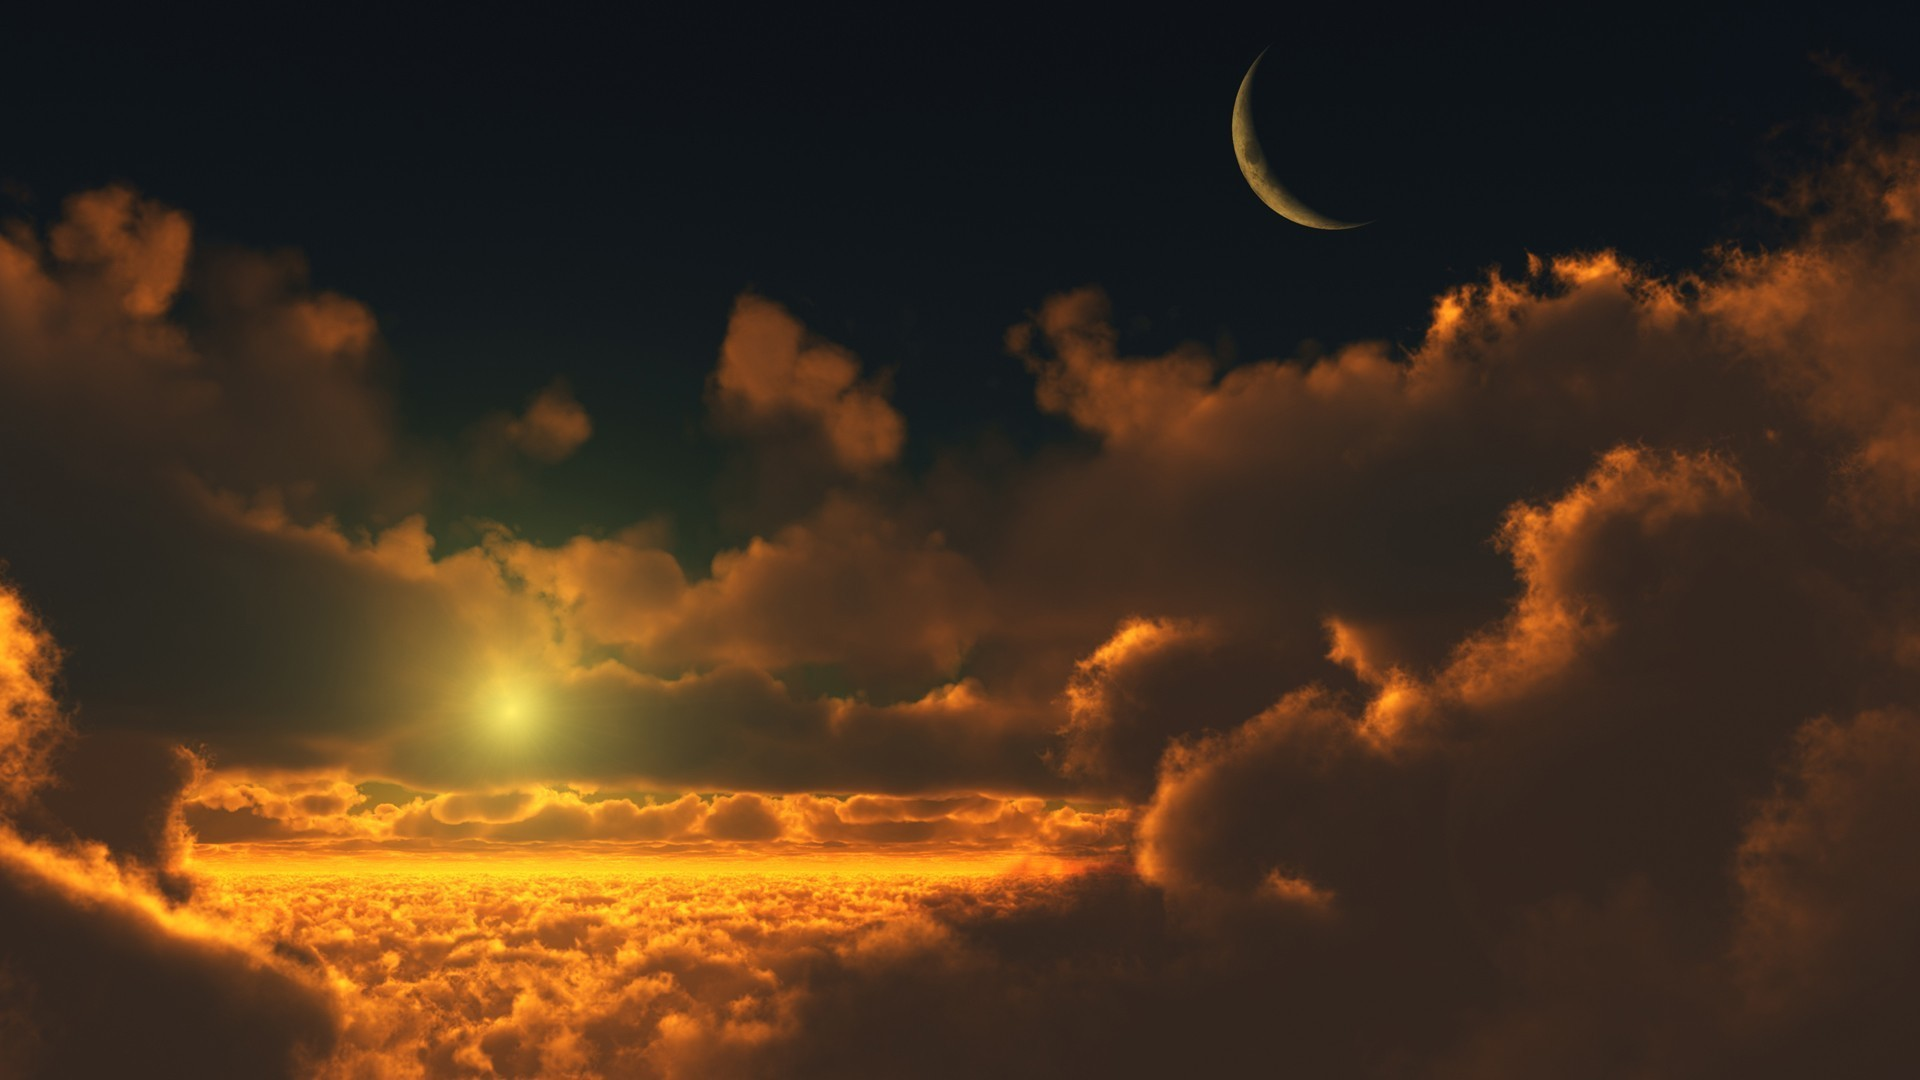 Sunset and moonrise wallpaper #3440 · sun and moon …